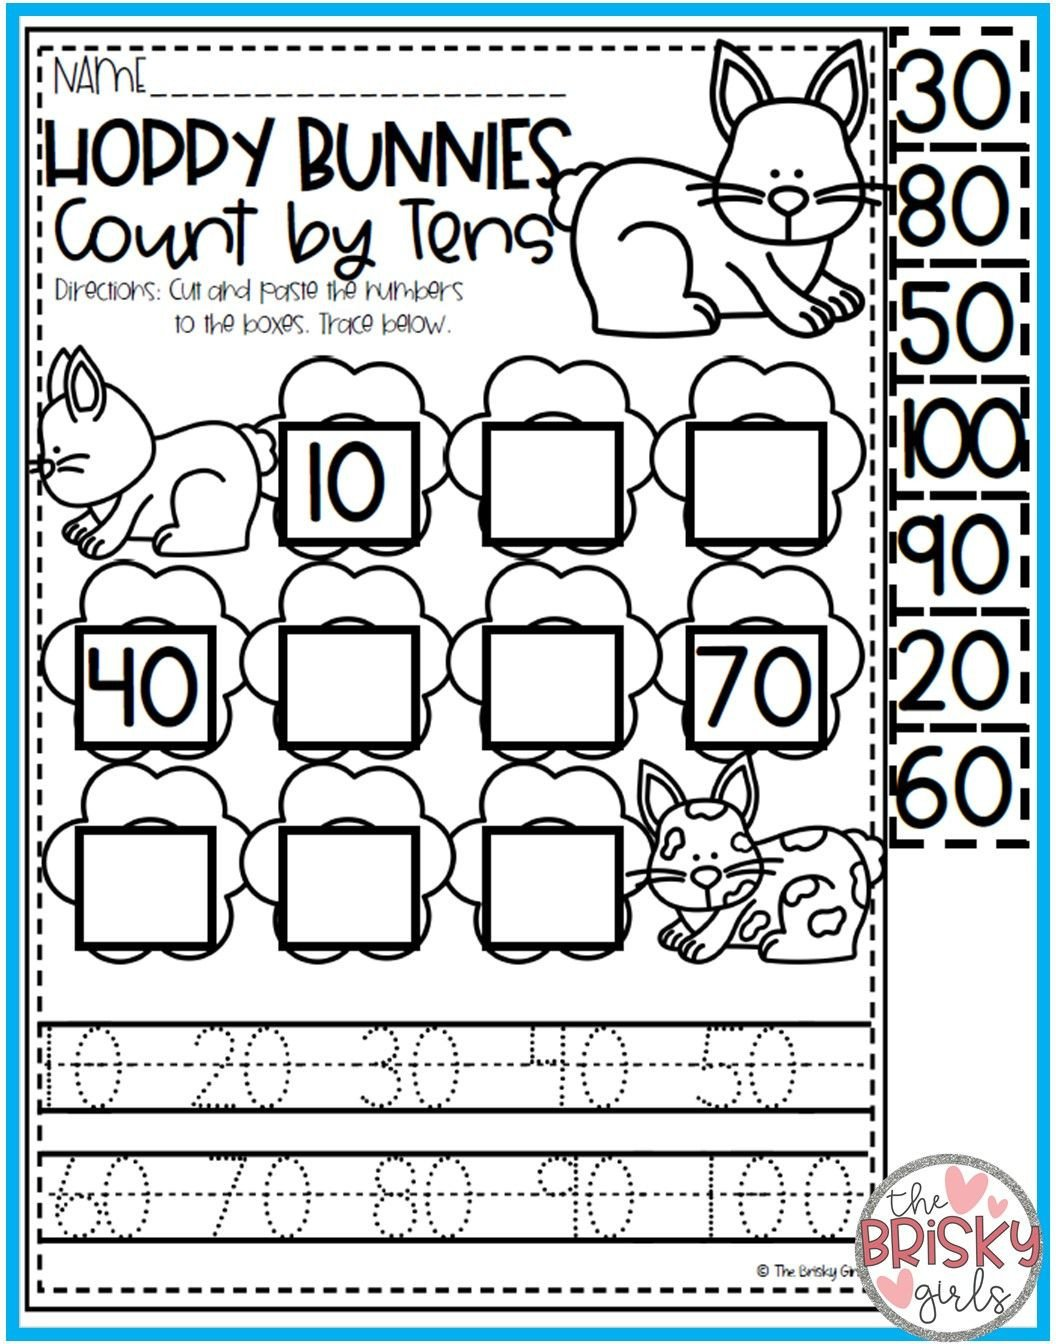 Social Studies for Kindergarten Worksheets Pin by the Brisky Girls On Nºmero In 2020